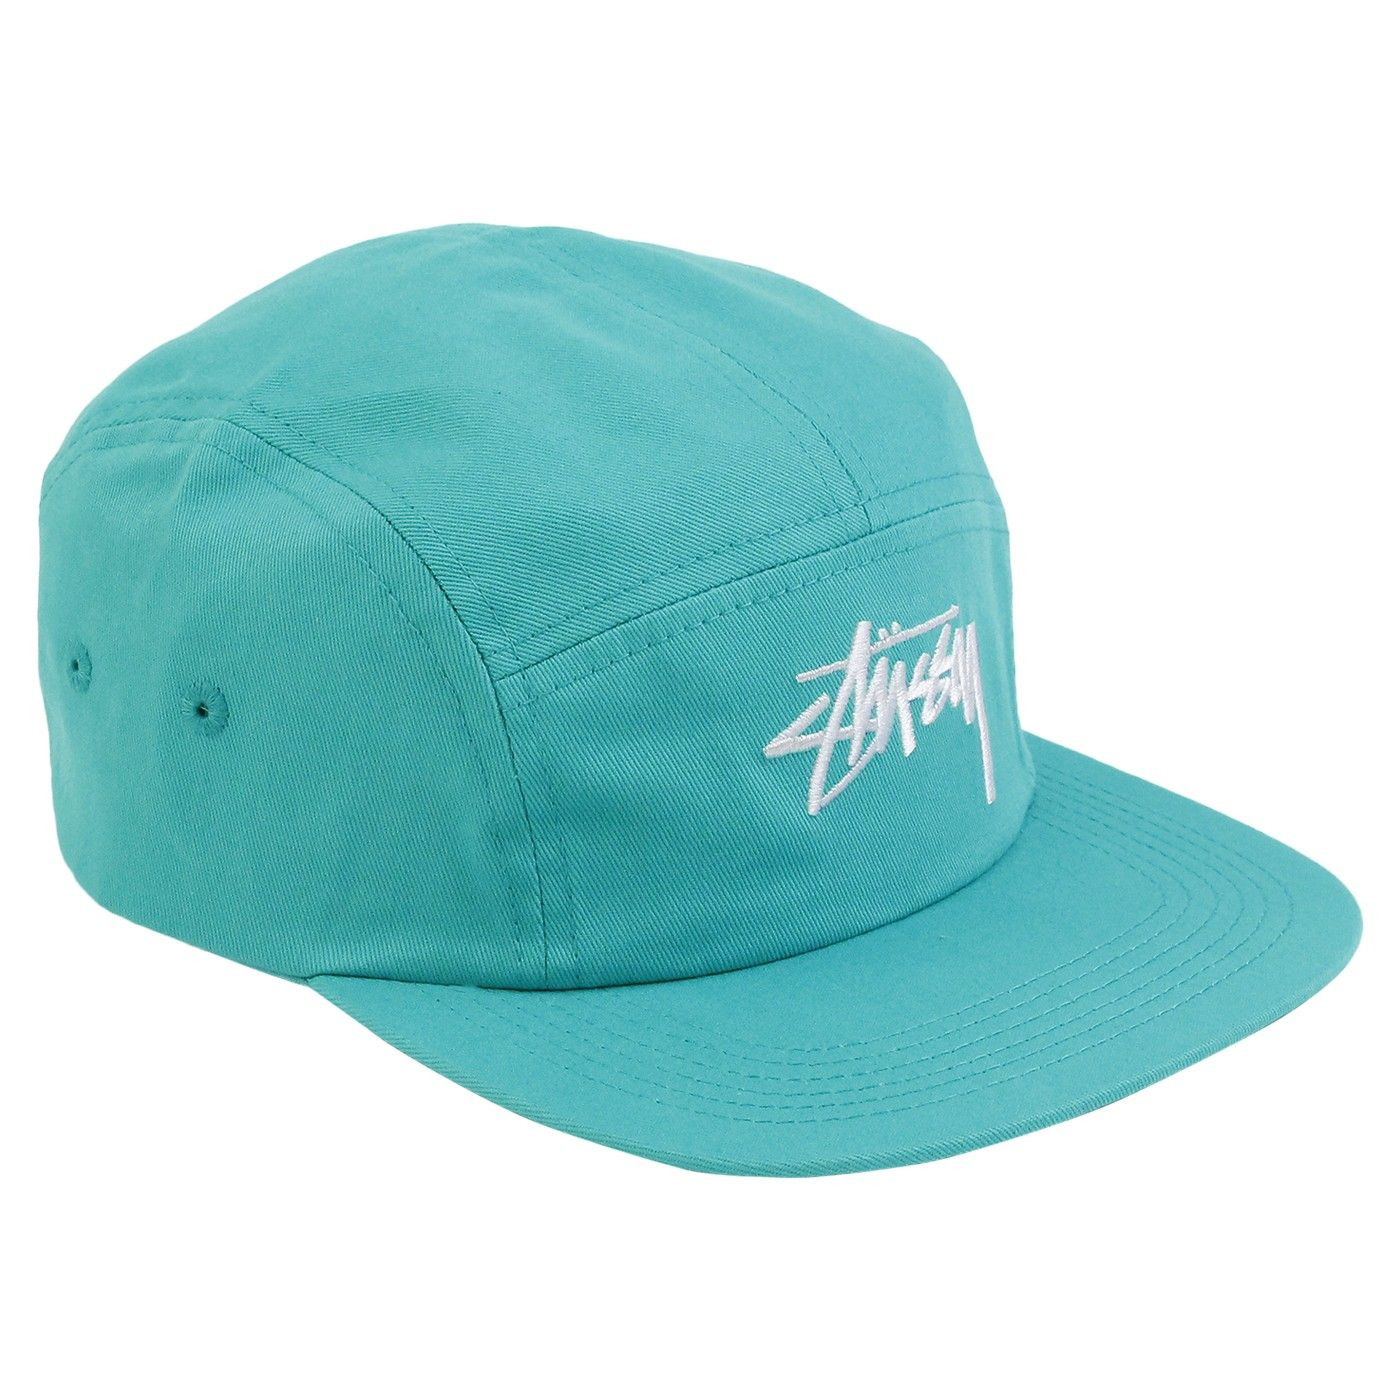 dce4b5b7a49 Stock 5 Panel Cap in Teal by Stussy